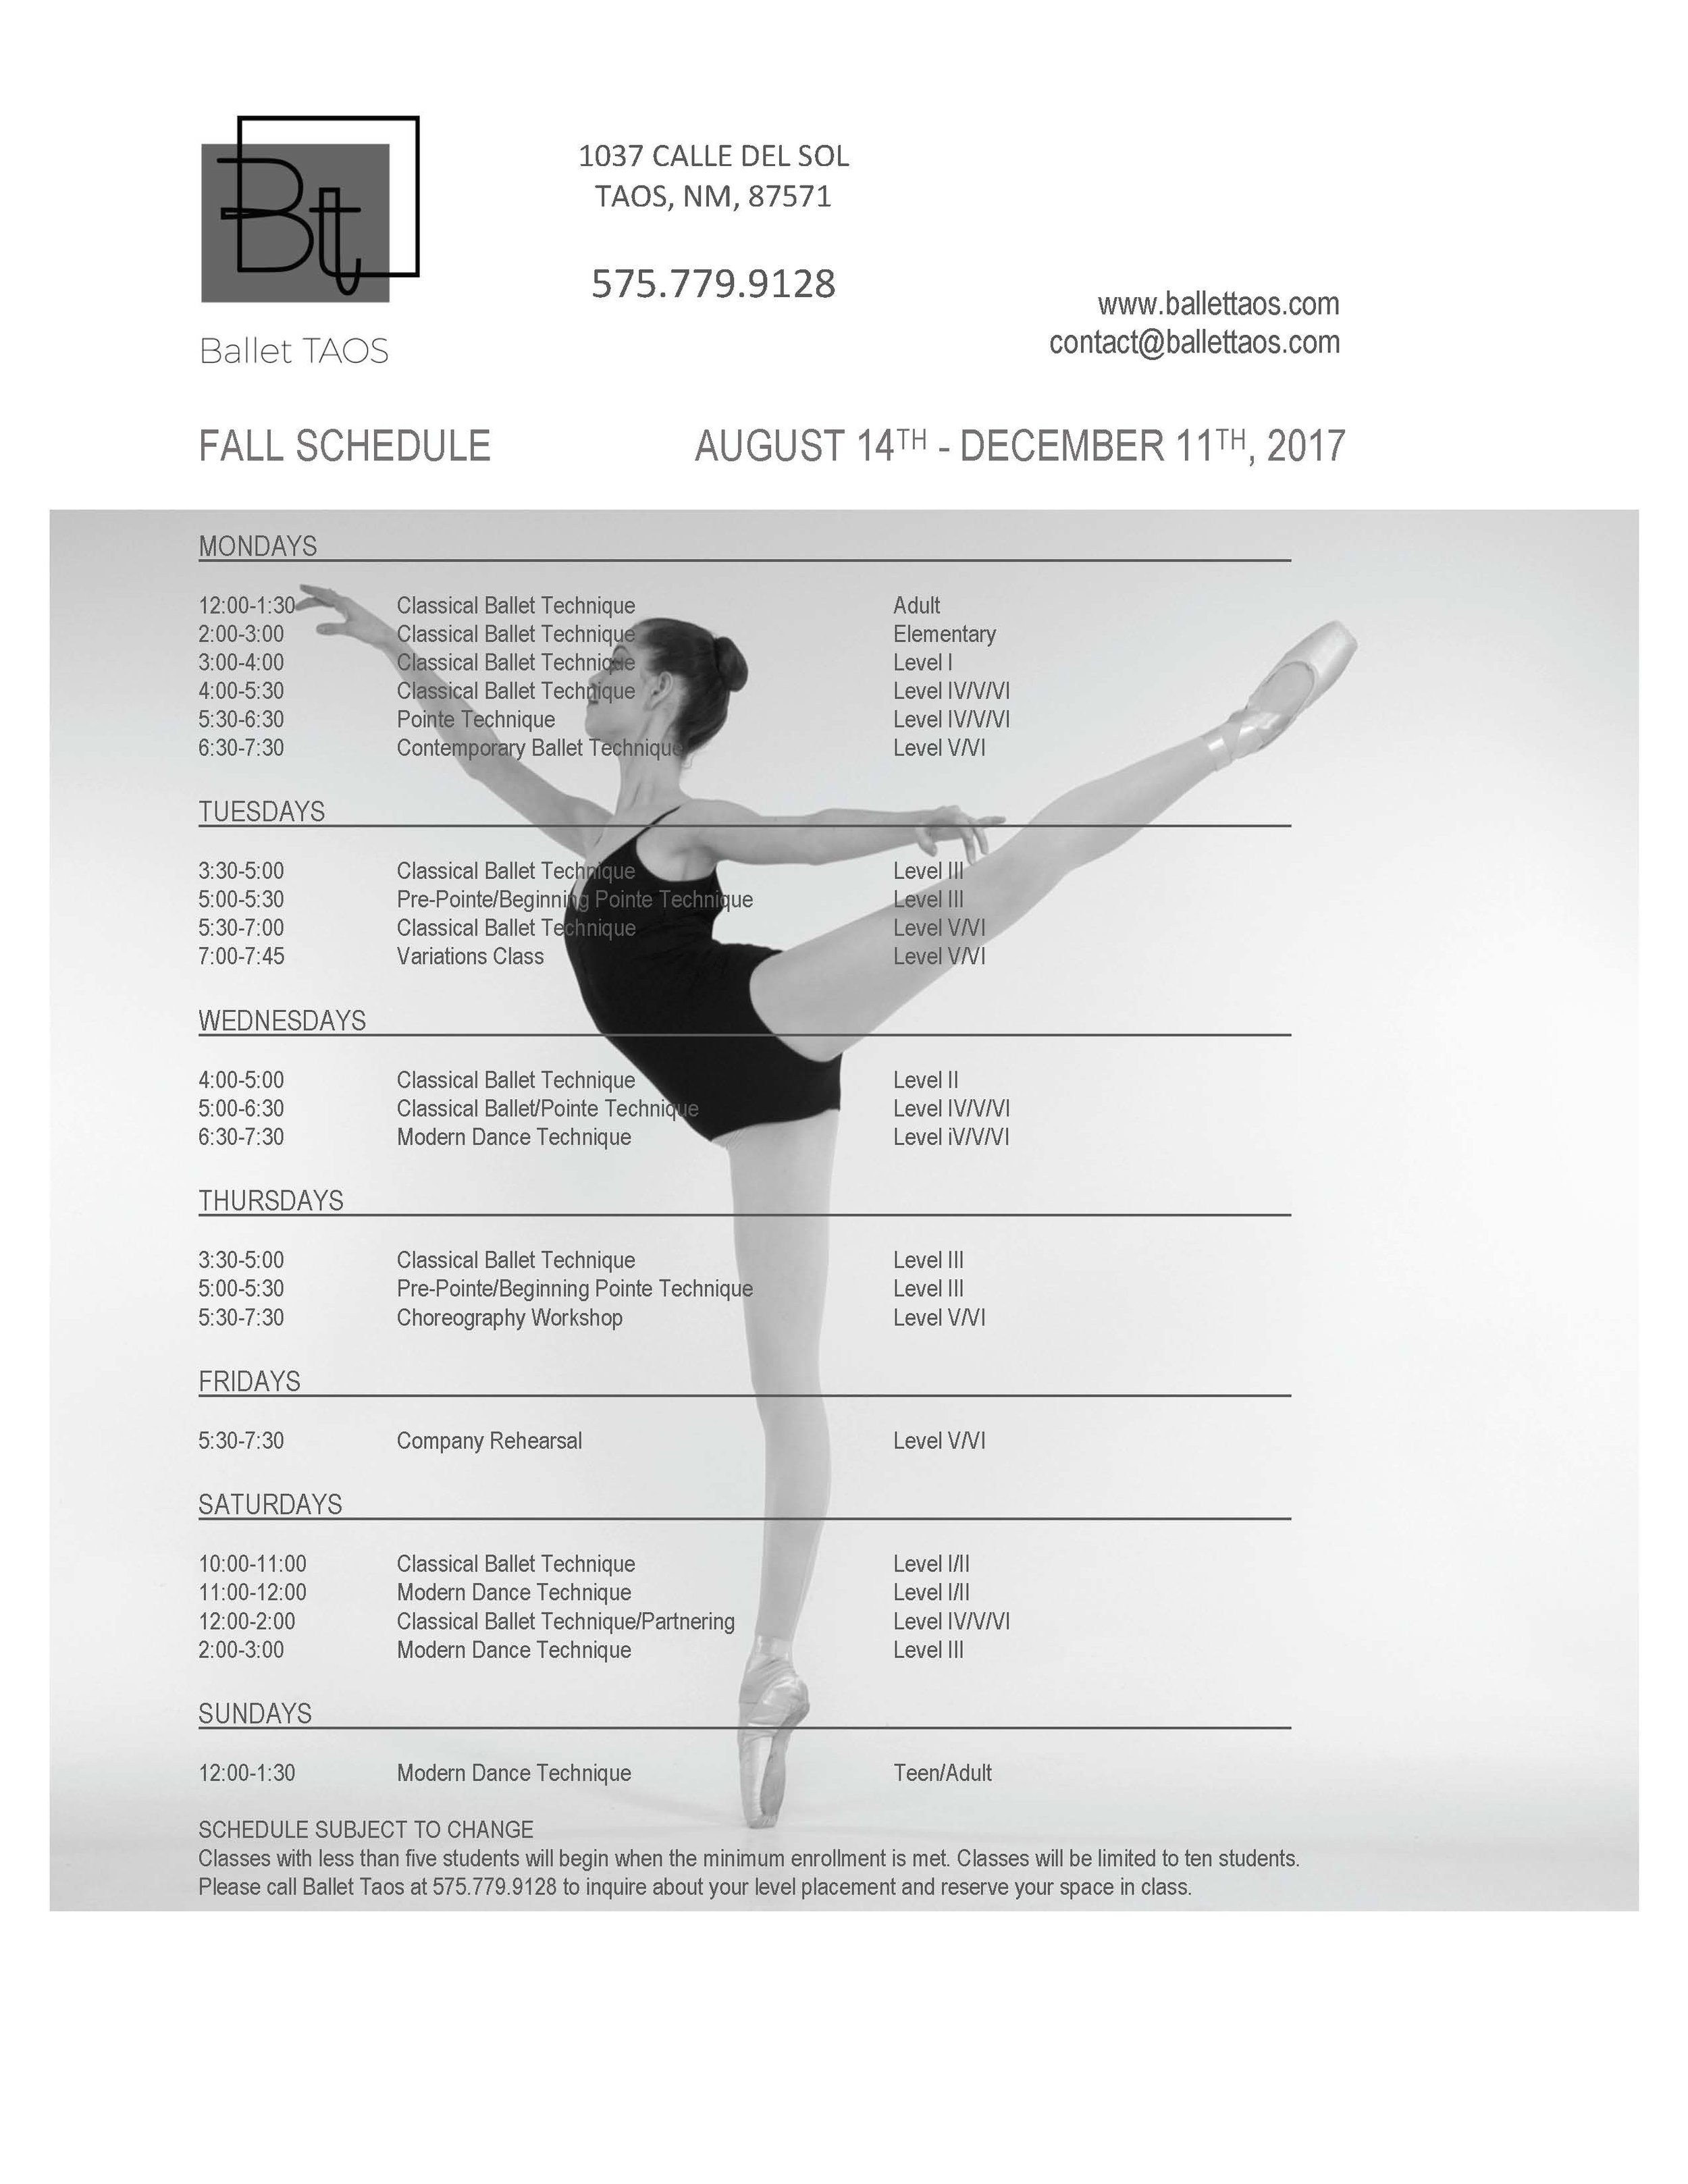 Ballet Taos Fall Schedule 2017 August 14th (no instructors).jpg